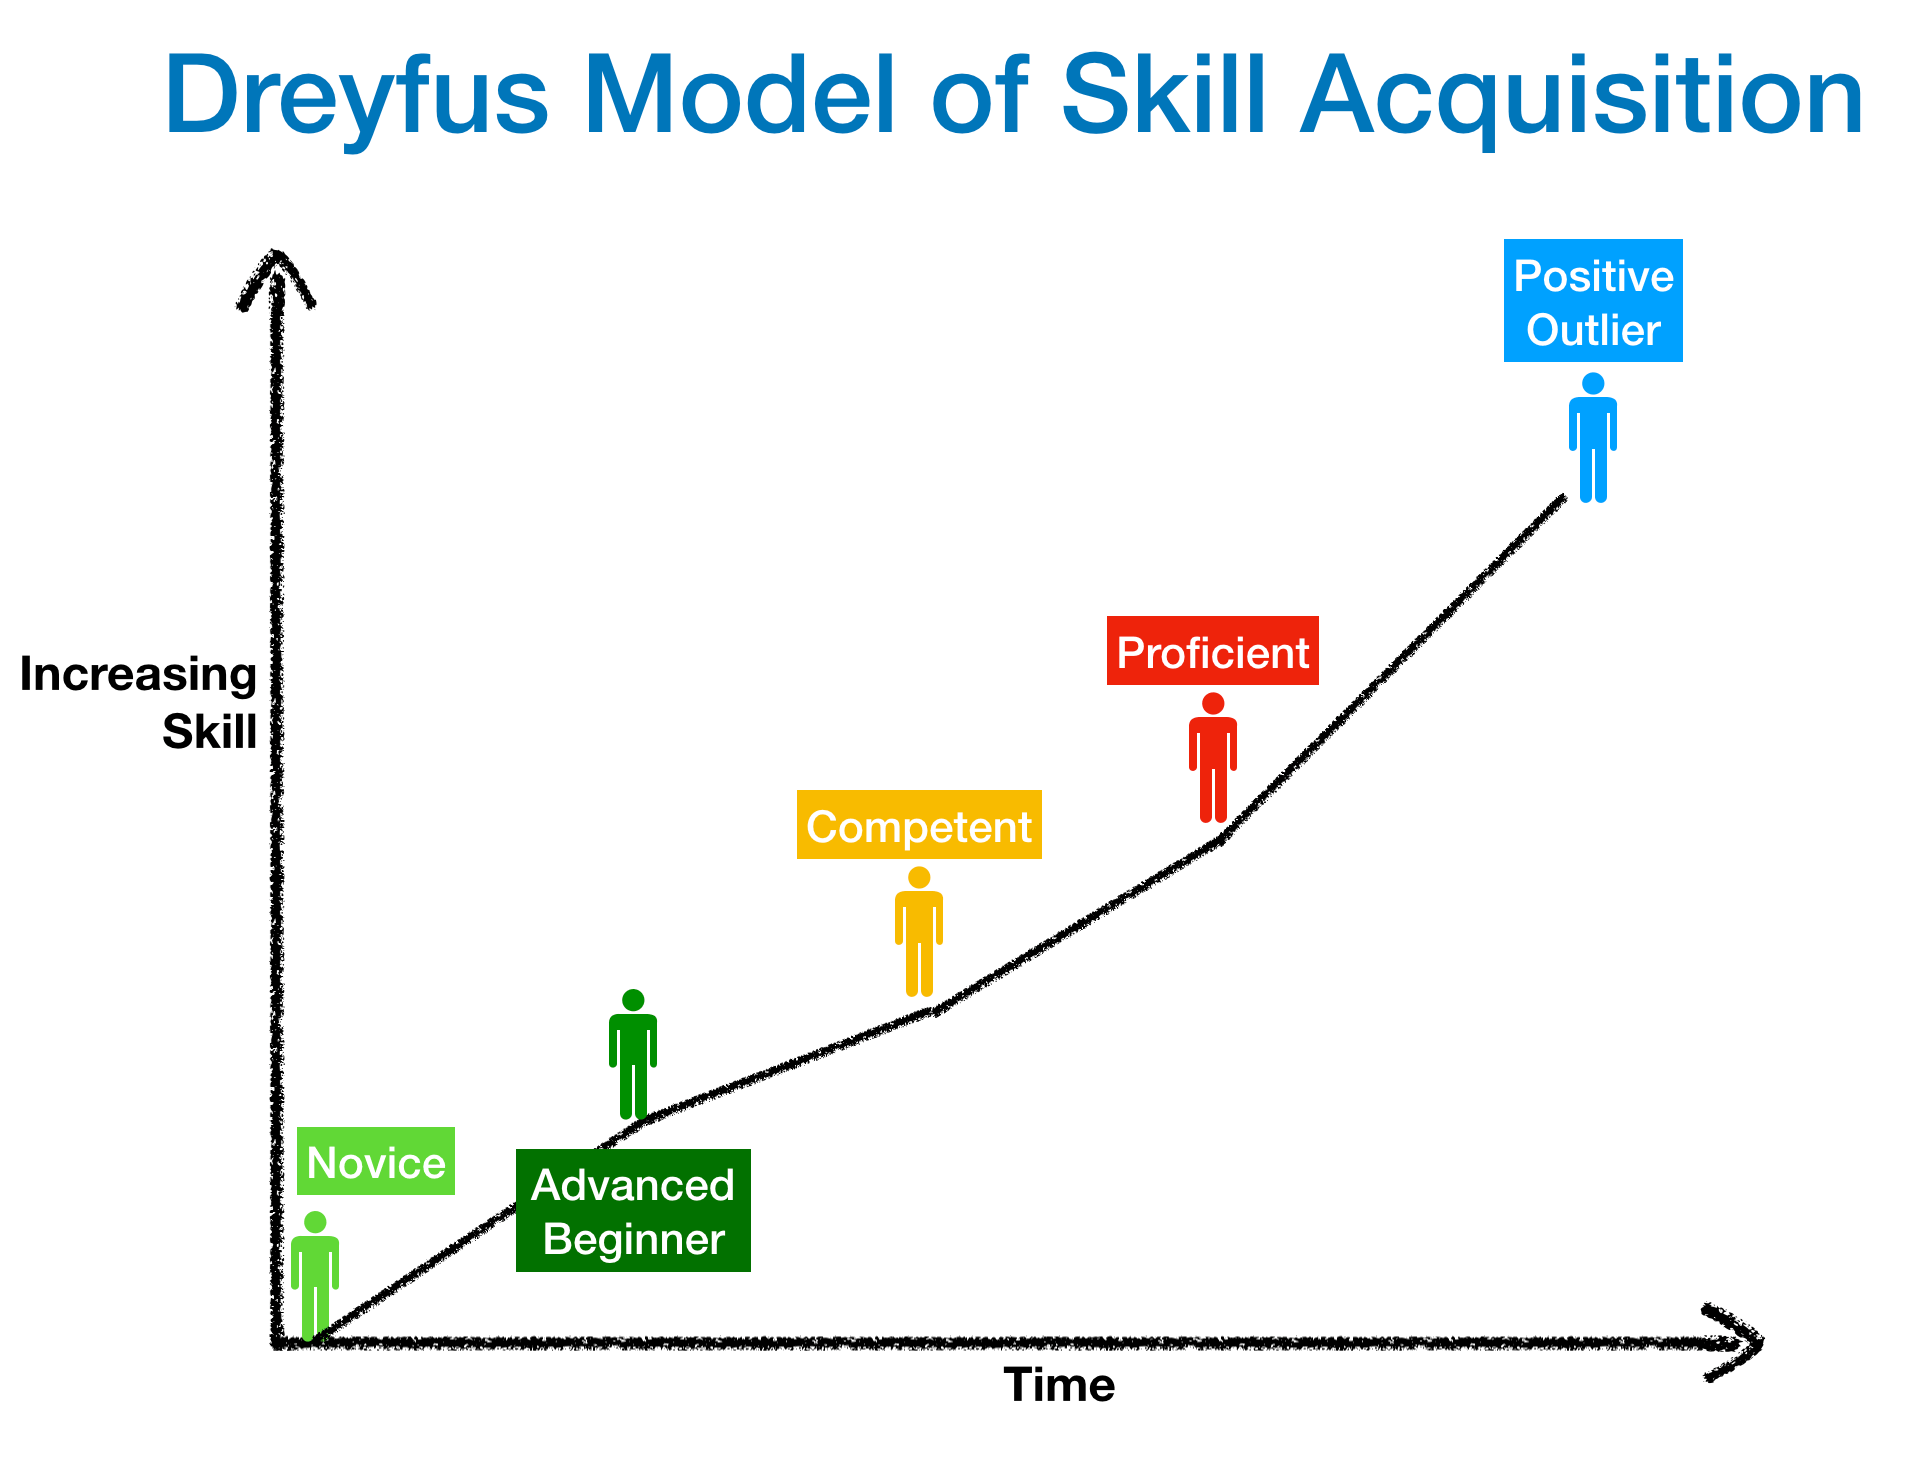 Variant of Dreyfus Model of Skill Acquisition